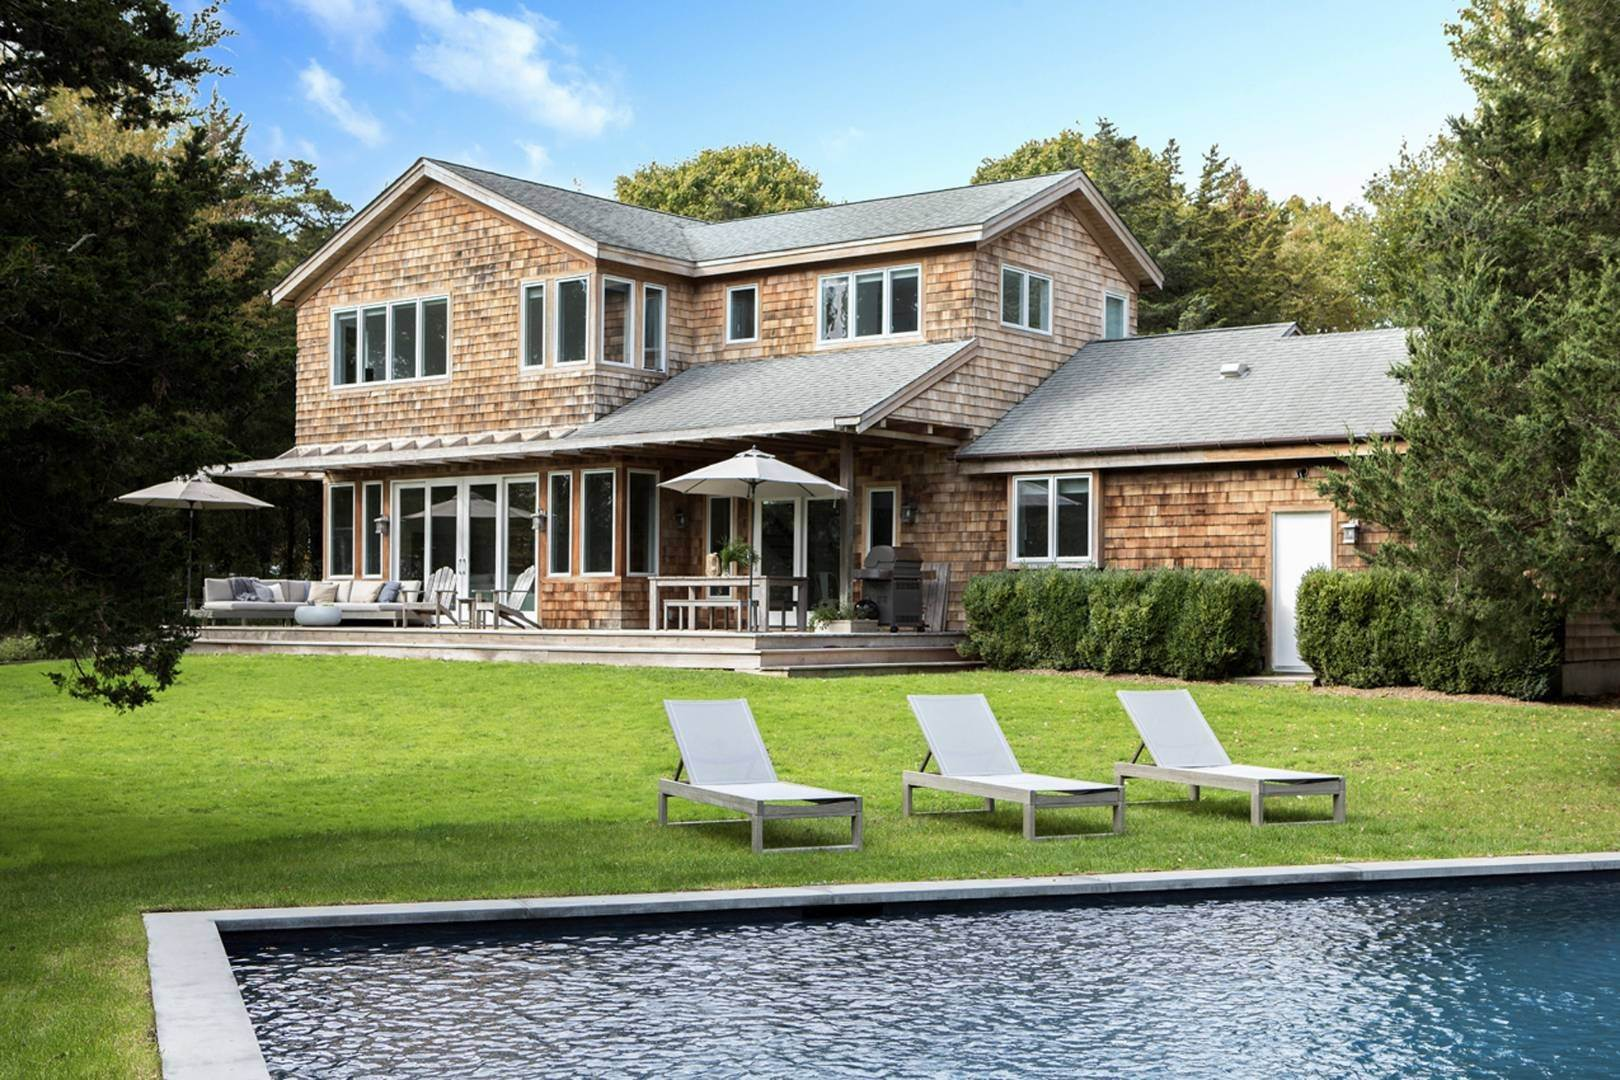 Single Family Home at Newly Designed Near Southampton Village 20 Schwenks Road, Water Mill, NY 11976